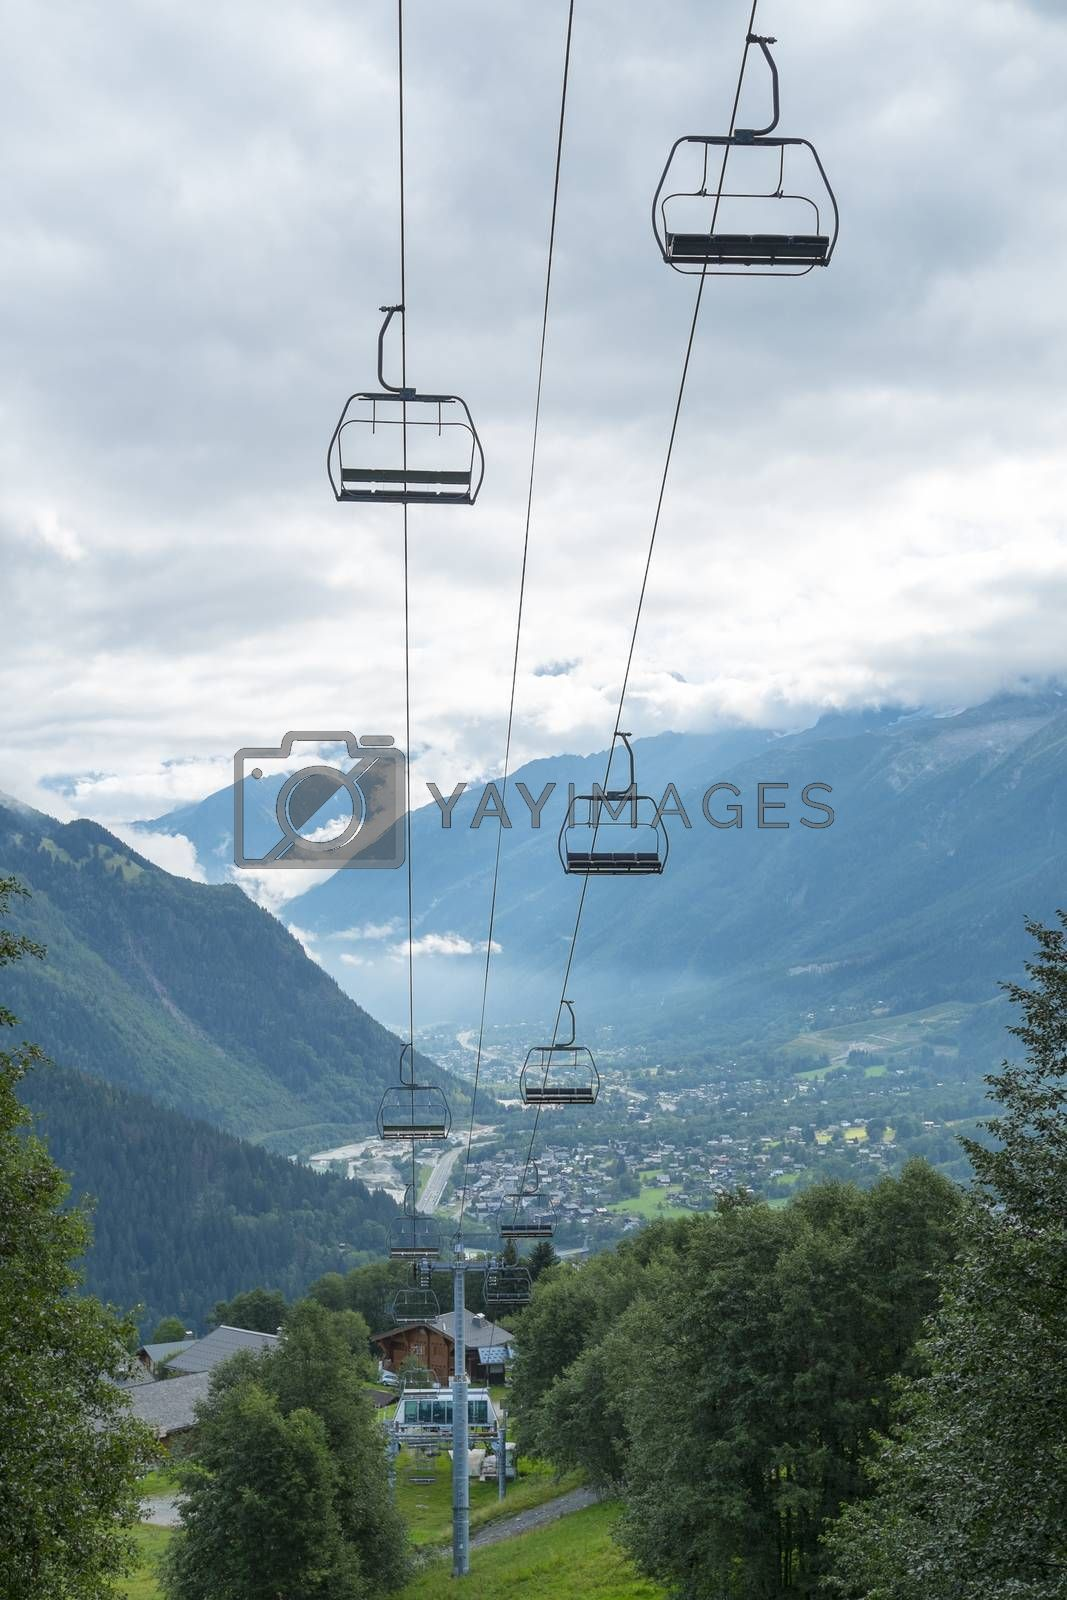 LES HOUCHES, FRANCE - AUGUST 23: Low angle shot of alpine air lift with Les Houches in the background. Les Houches is one of the Tour du Mont Blanc villages. August 24, 2014 in Les Houches.